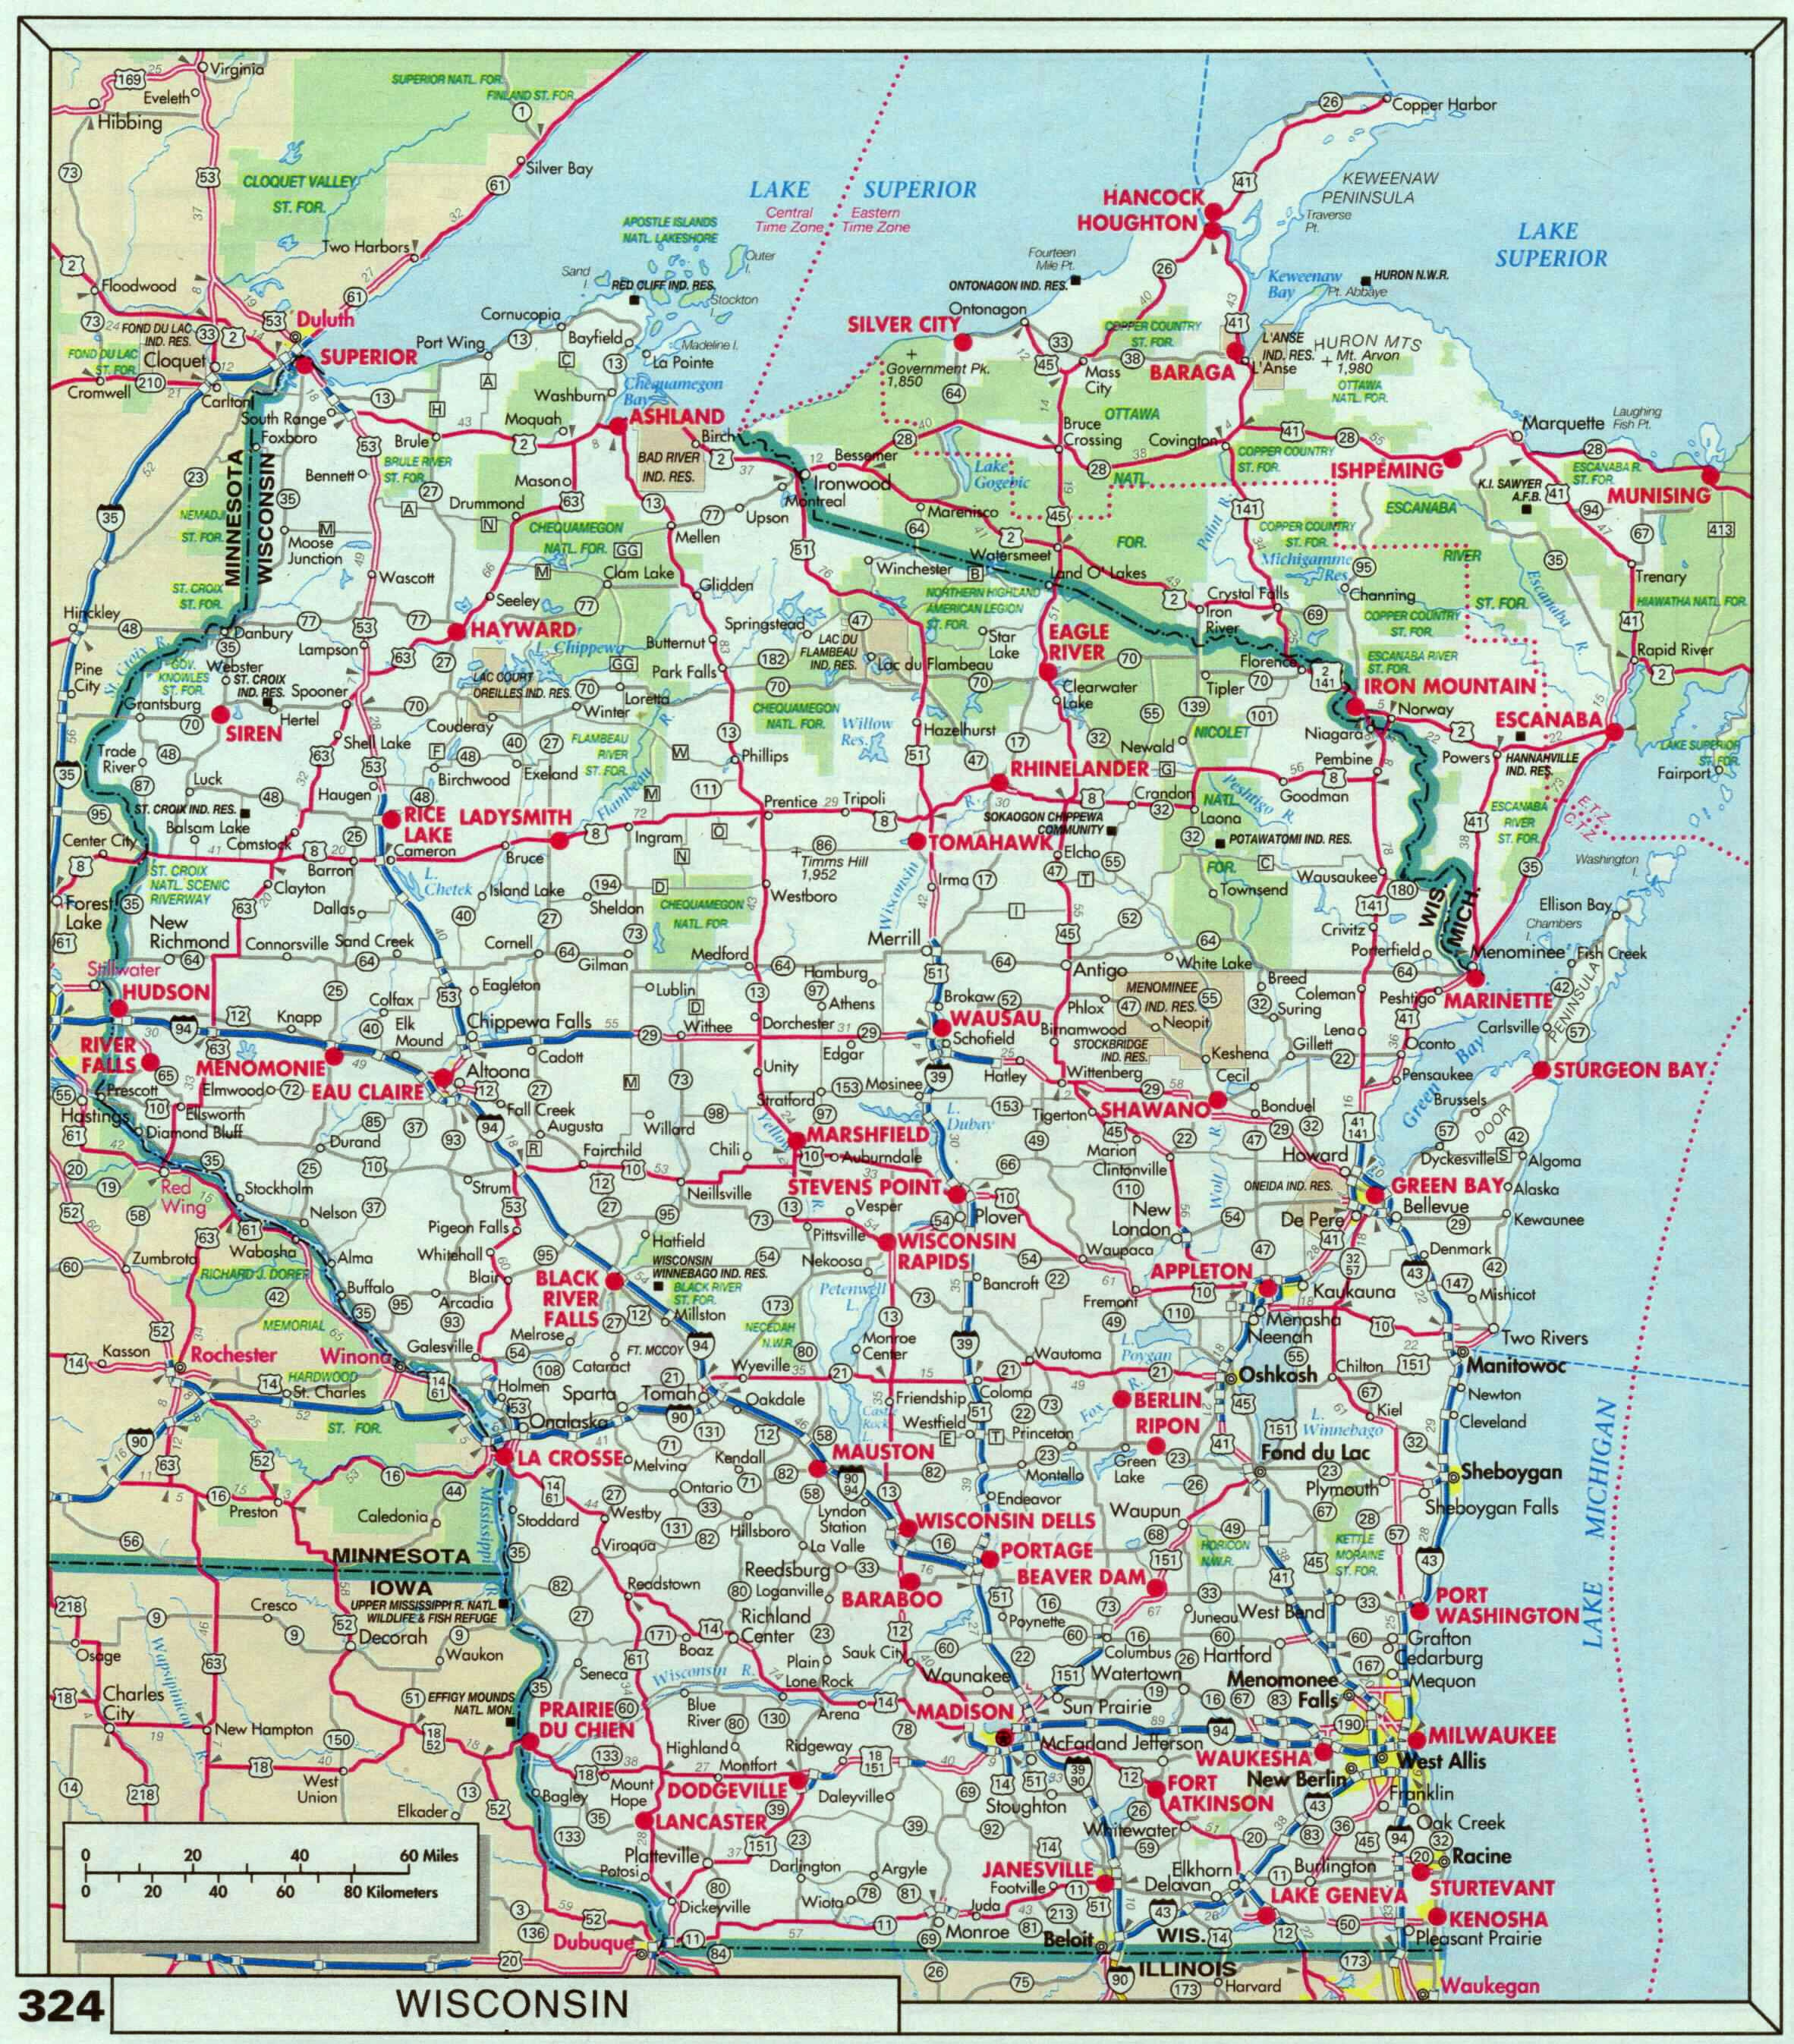 Printable Map Directions Roads And Highways Map Of Wisconsin State - Printable State Maps With Highways